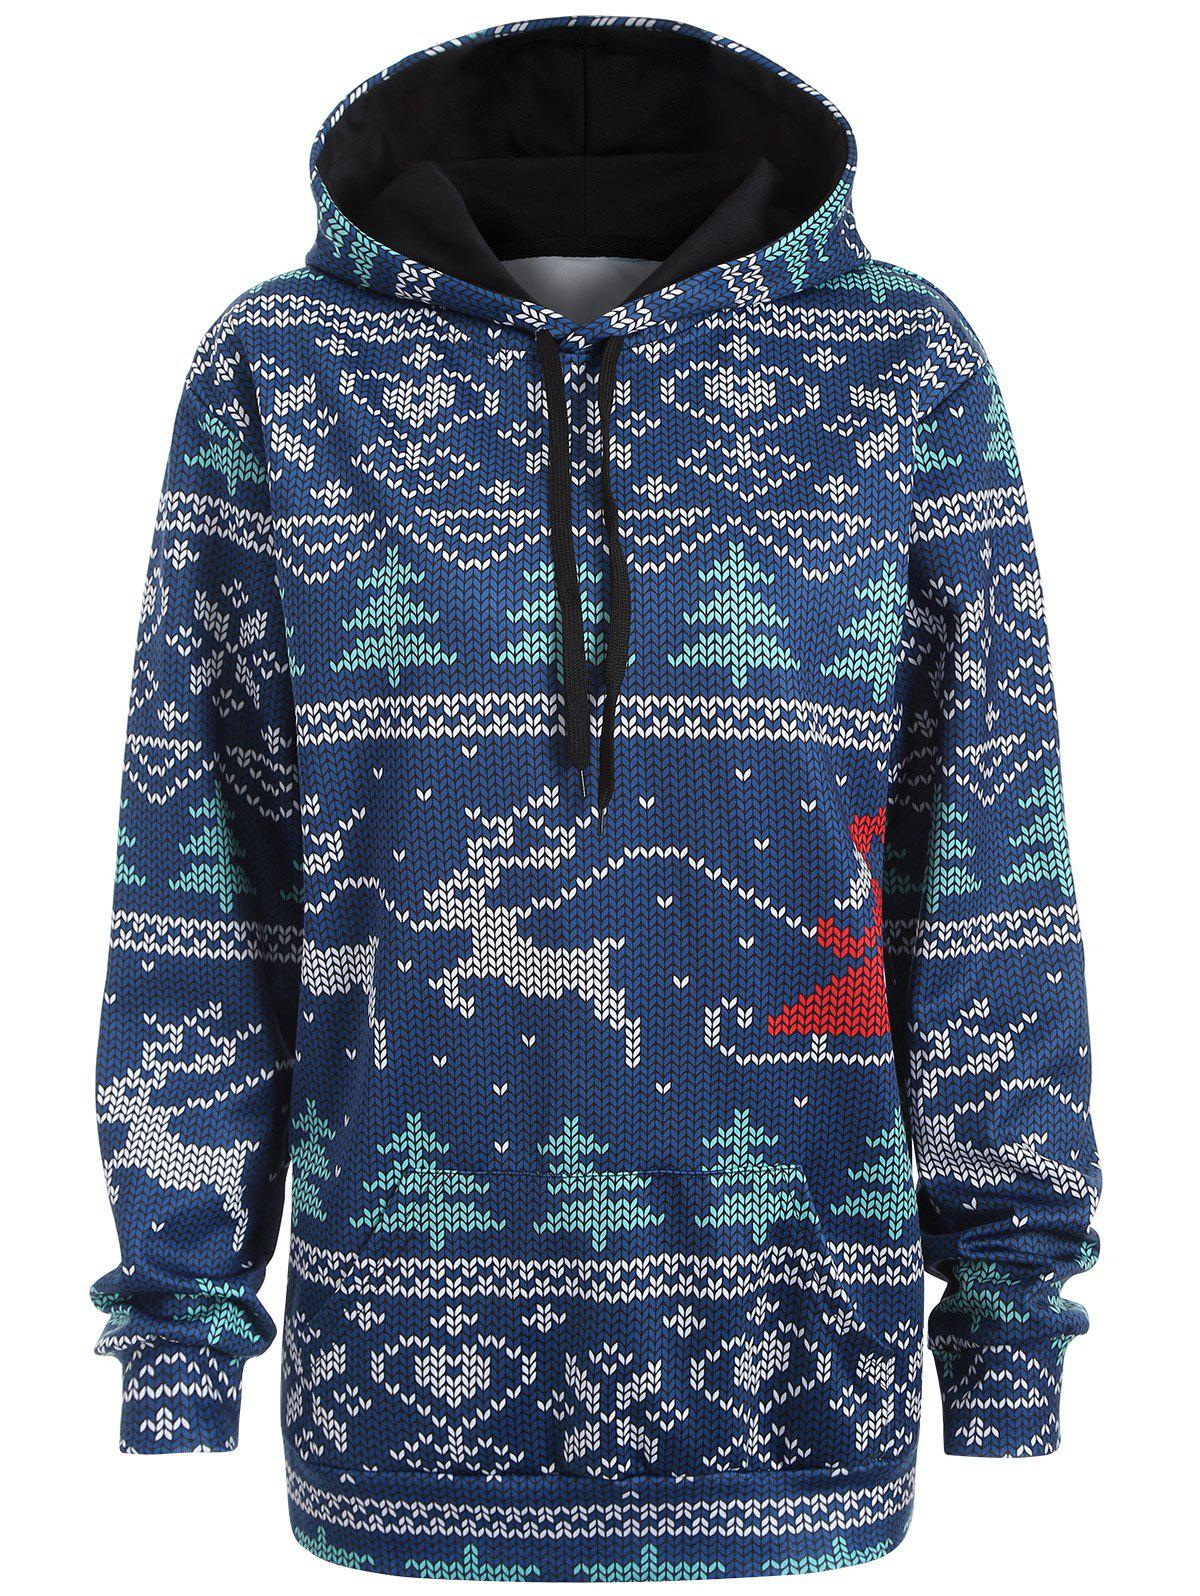 Plus Size Christmas Drawstring Kangaroo Pocket Patterned HoodiesWOMEN<br><br>Size: 3XL; Color: NAVY BLUE; Material: Polyester; Shirt Length: Long; Sleeve Length: Full; Style: Casual; Pattern Style: Plant; Season: Fall,Spring; Weight: 0.419kg; Package Contents: 1 x Hoodie;